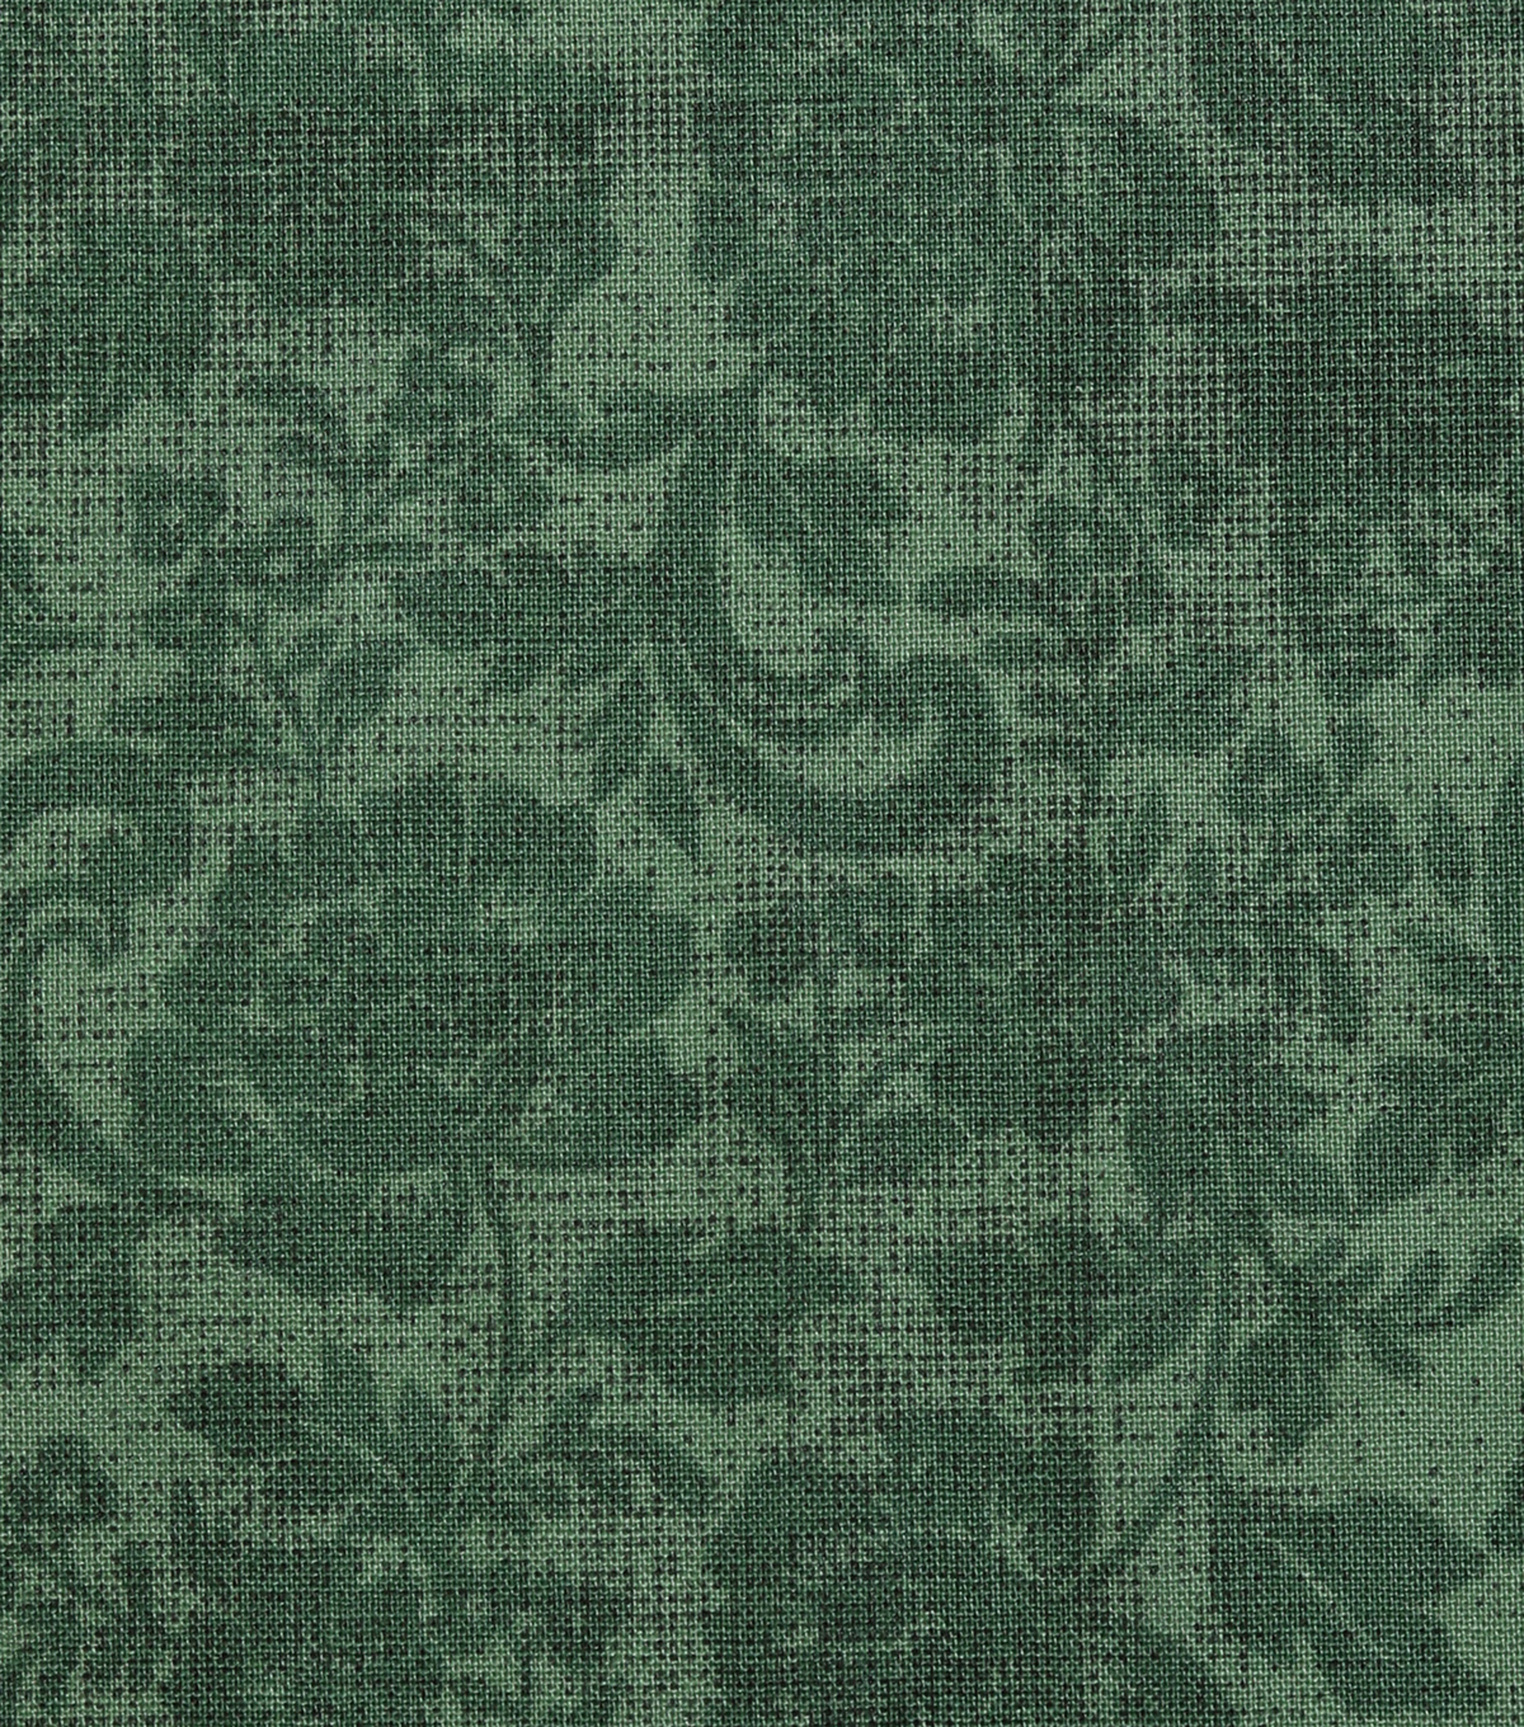 Harvest Cotton Fabric-Green Mums